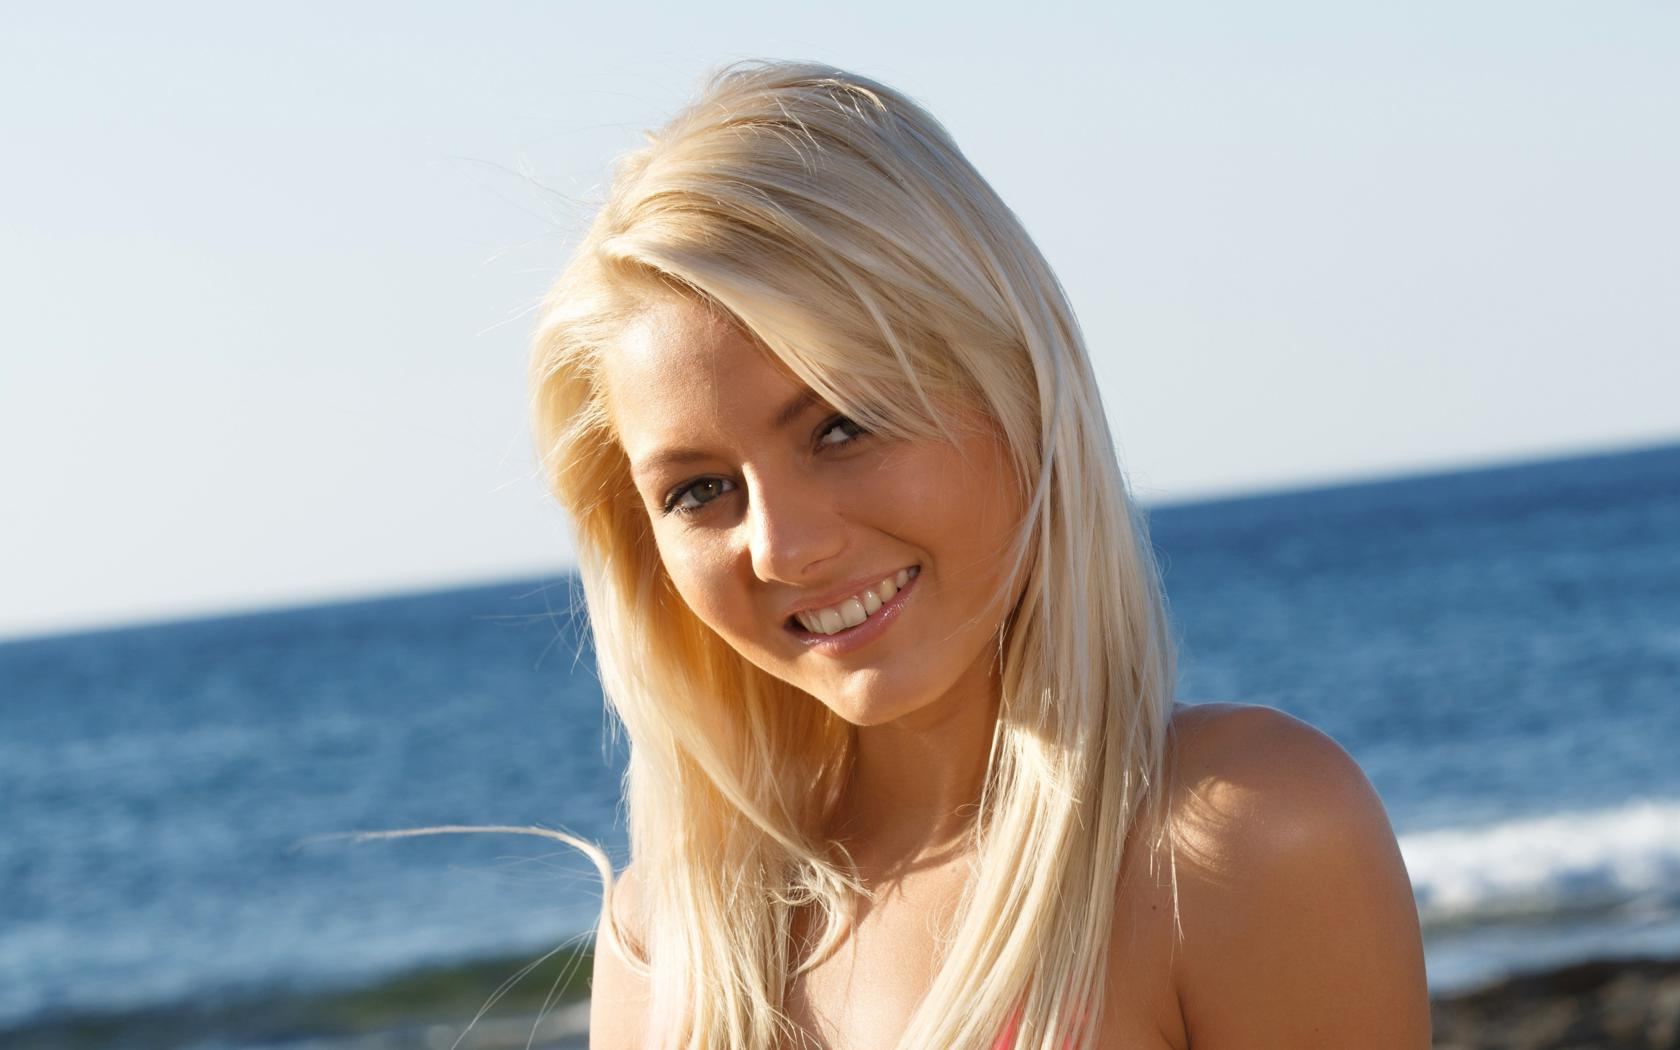 Annely gerritsen wallpapers for Android, iPhone and desktop.